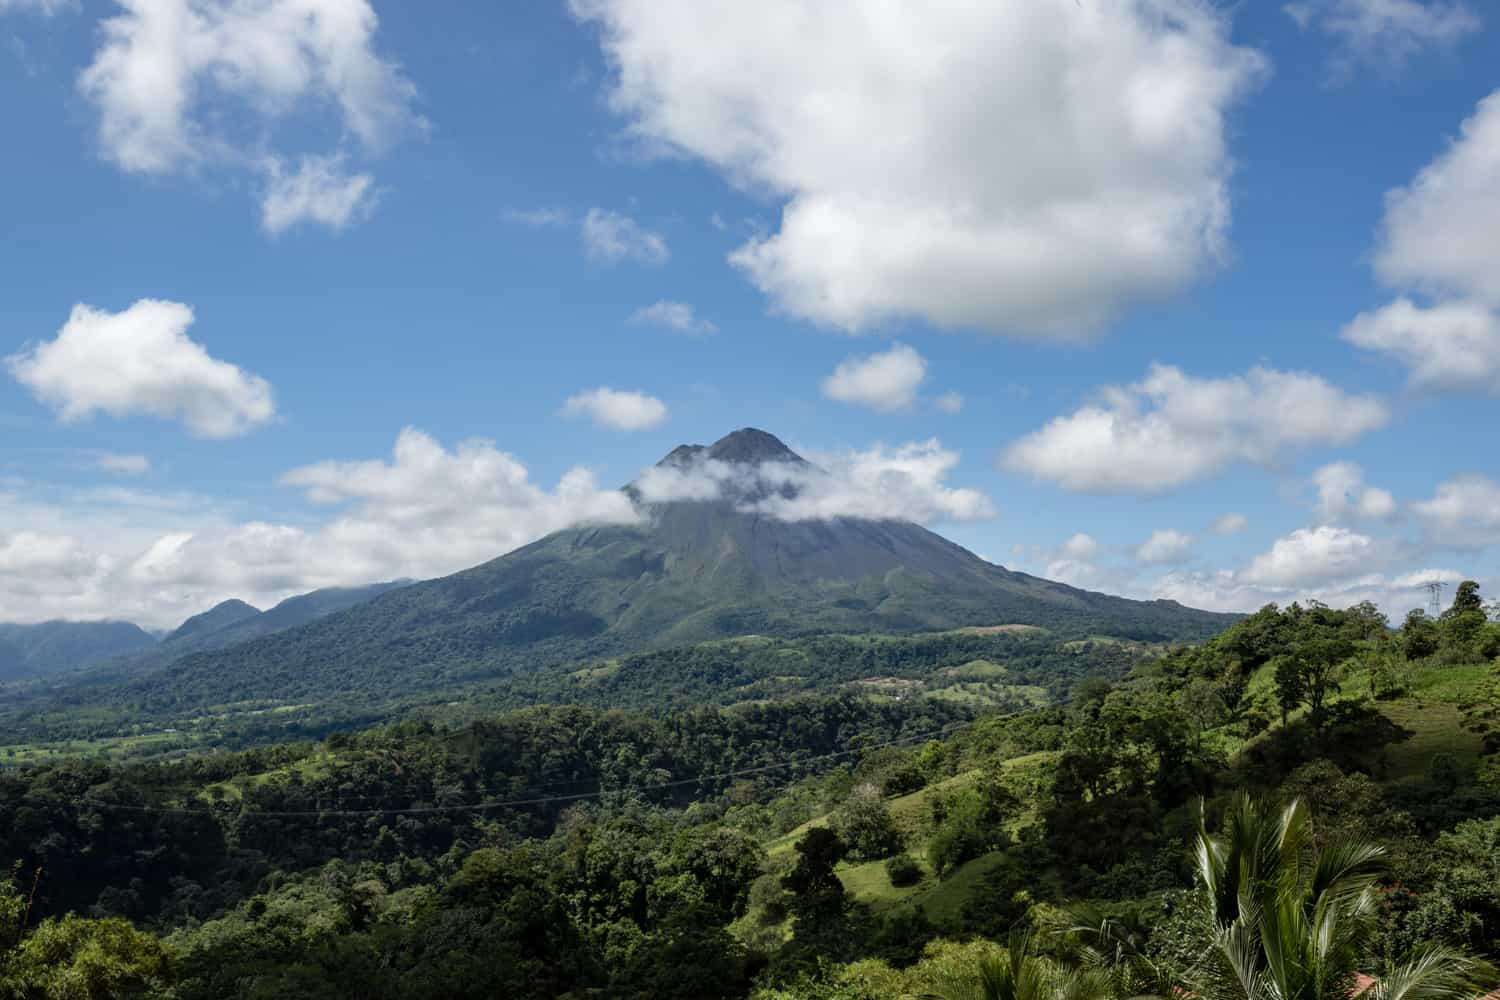 View of the Arenal Volcano from Ranchito Terrace wedding site at The Springs Resort & Spa.